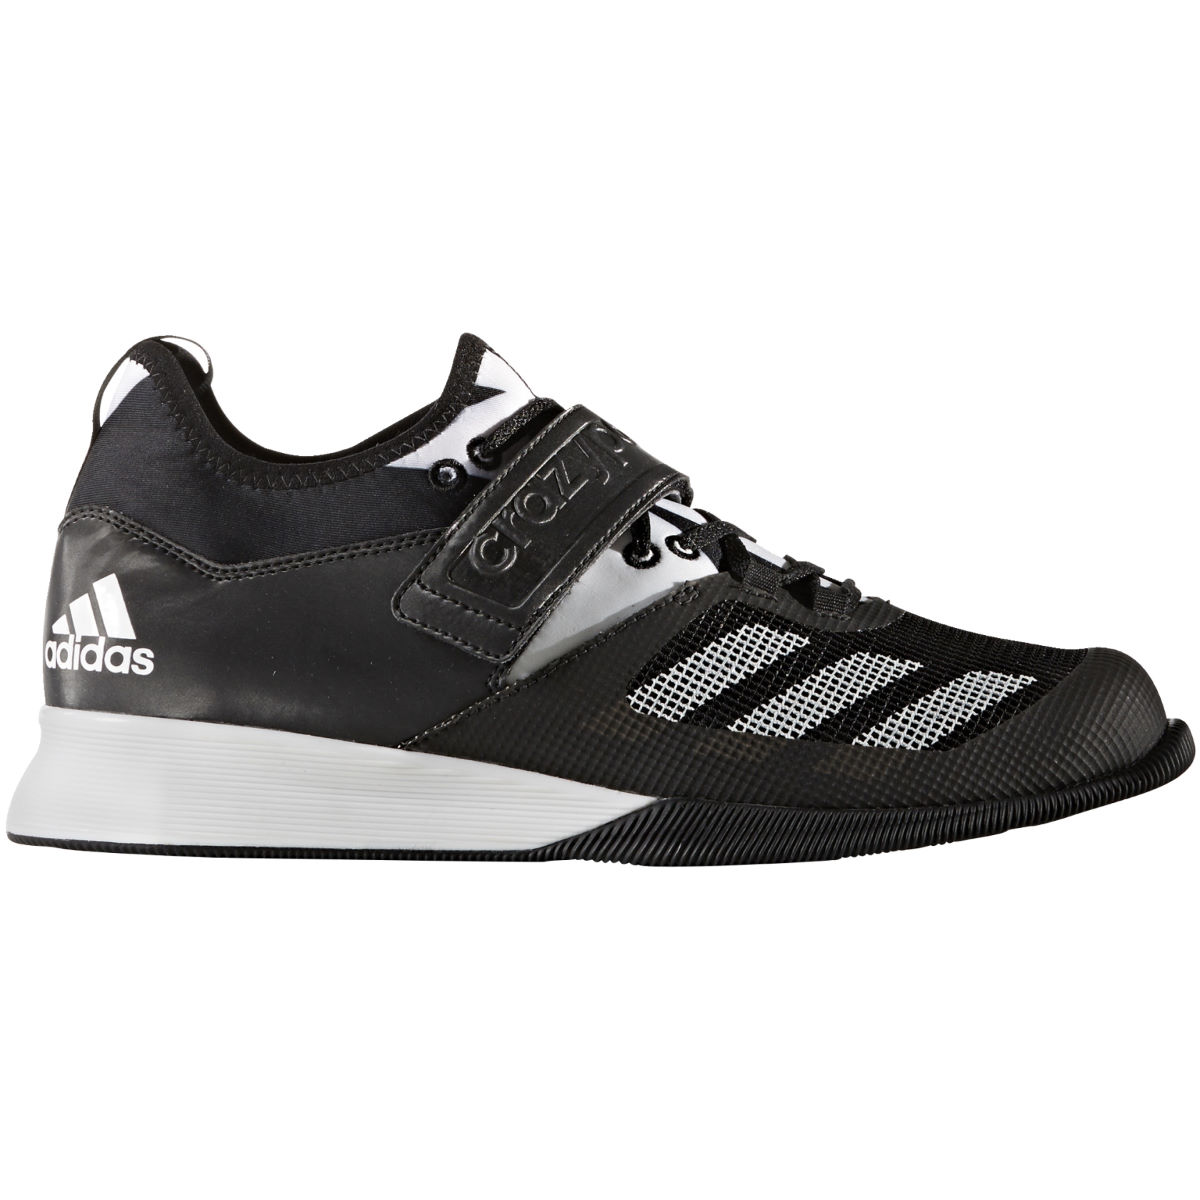 Chaussures Adidas Crazy Power - UK 13 Noir/Blanc